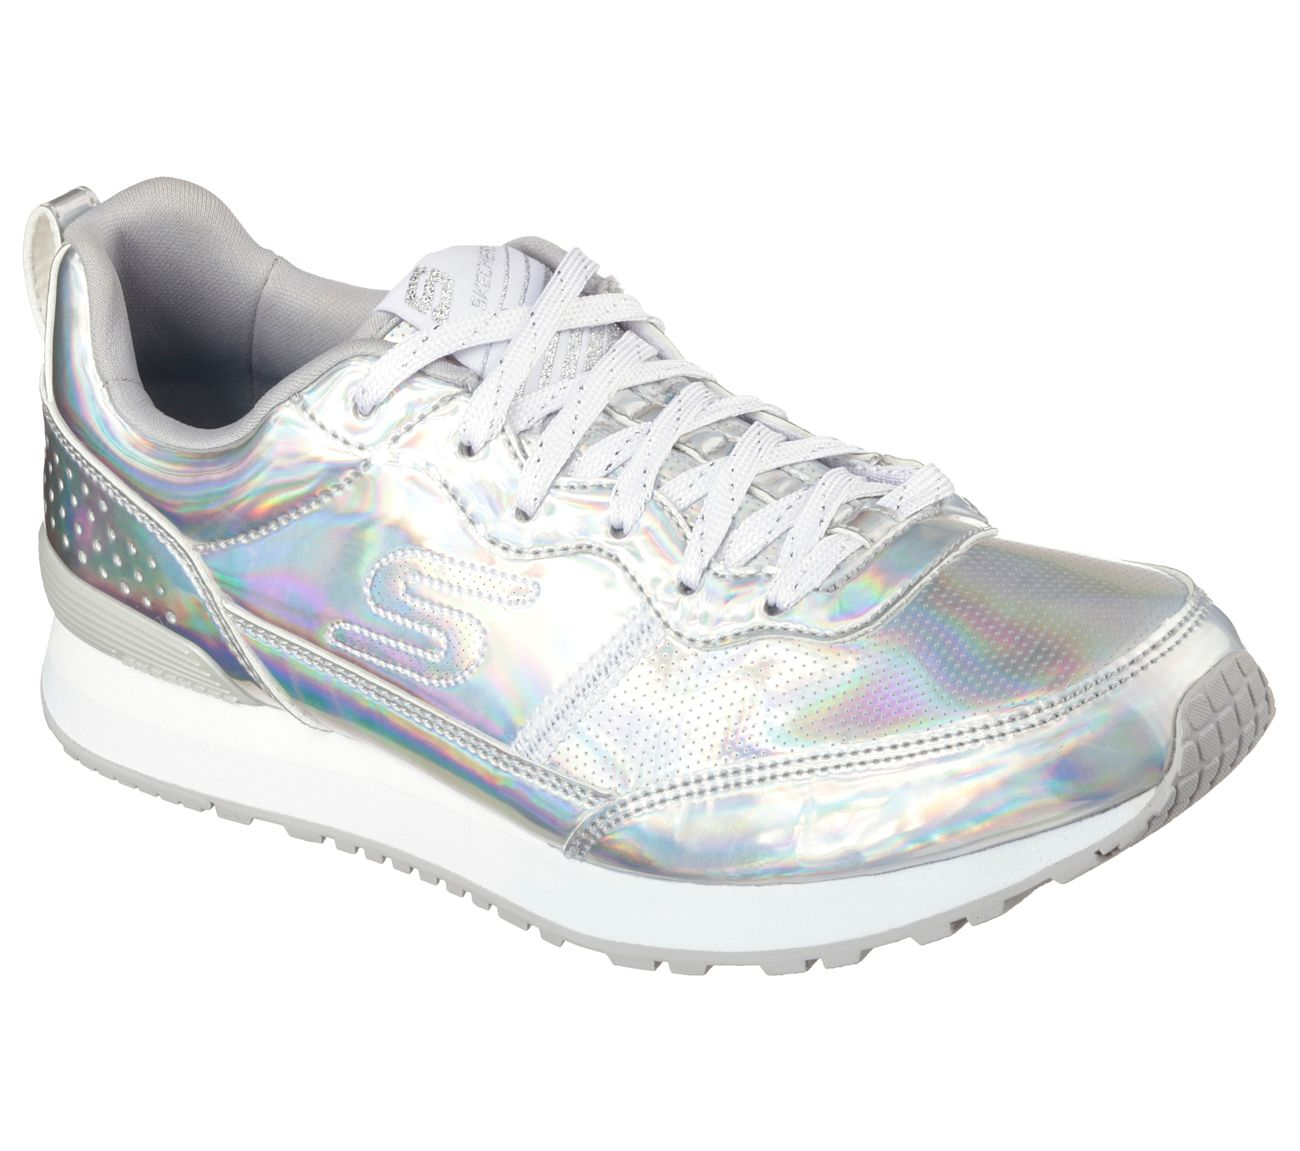 9  Skechers Sport Women Silver Blue Textile Athletic Flat Sneaker Shoe